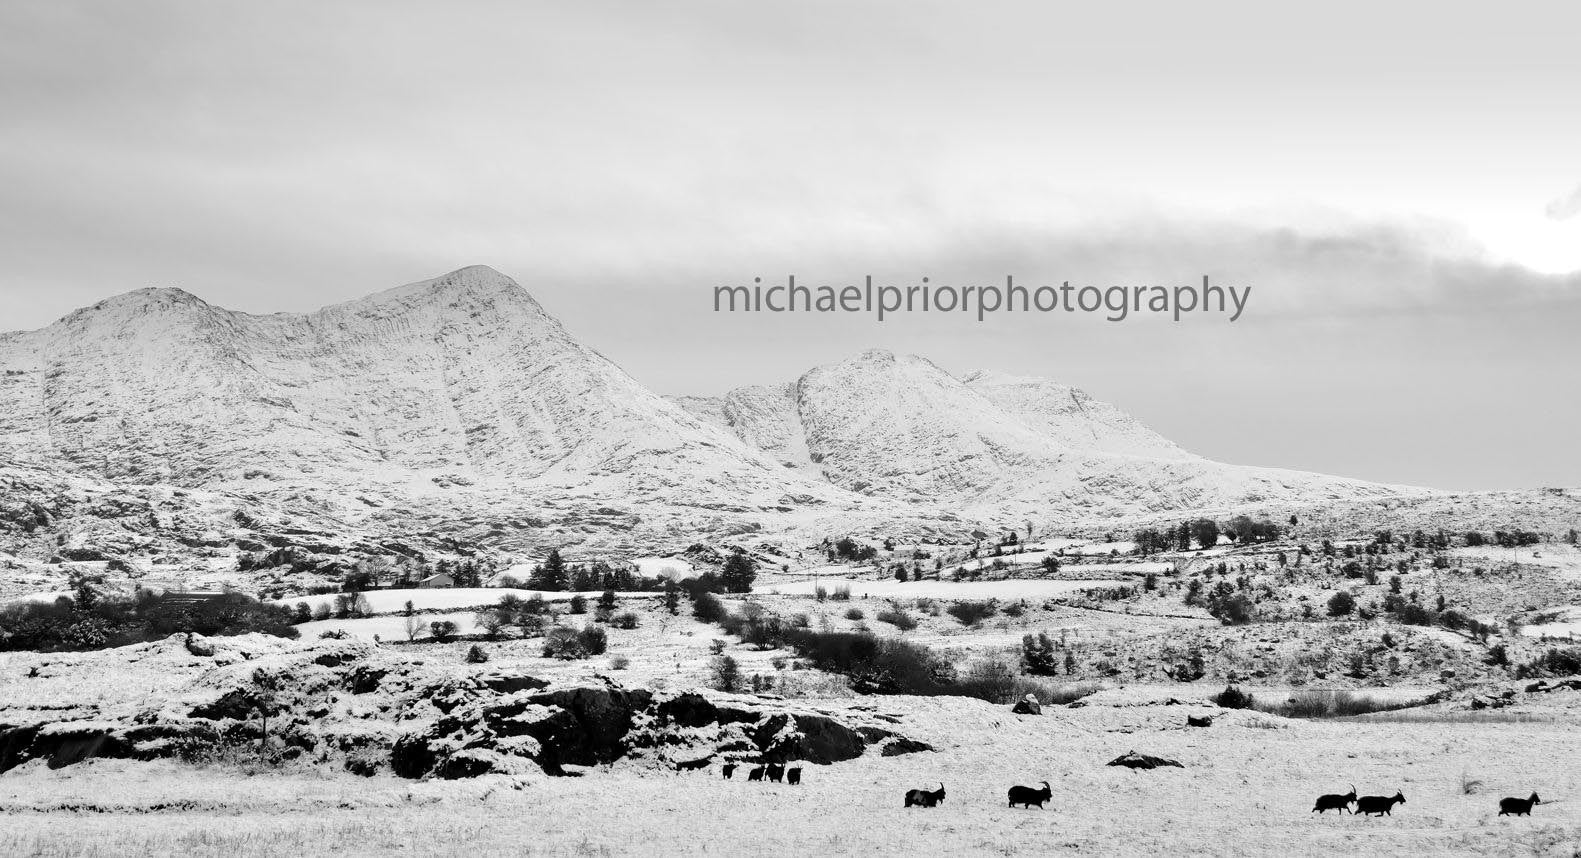 The Bridia Valley Under Snow - Michael Prior Photography